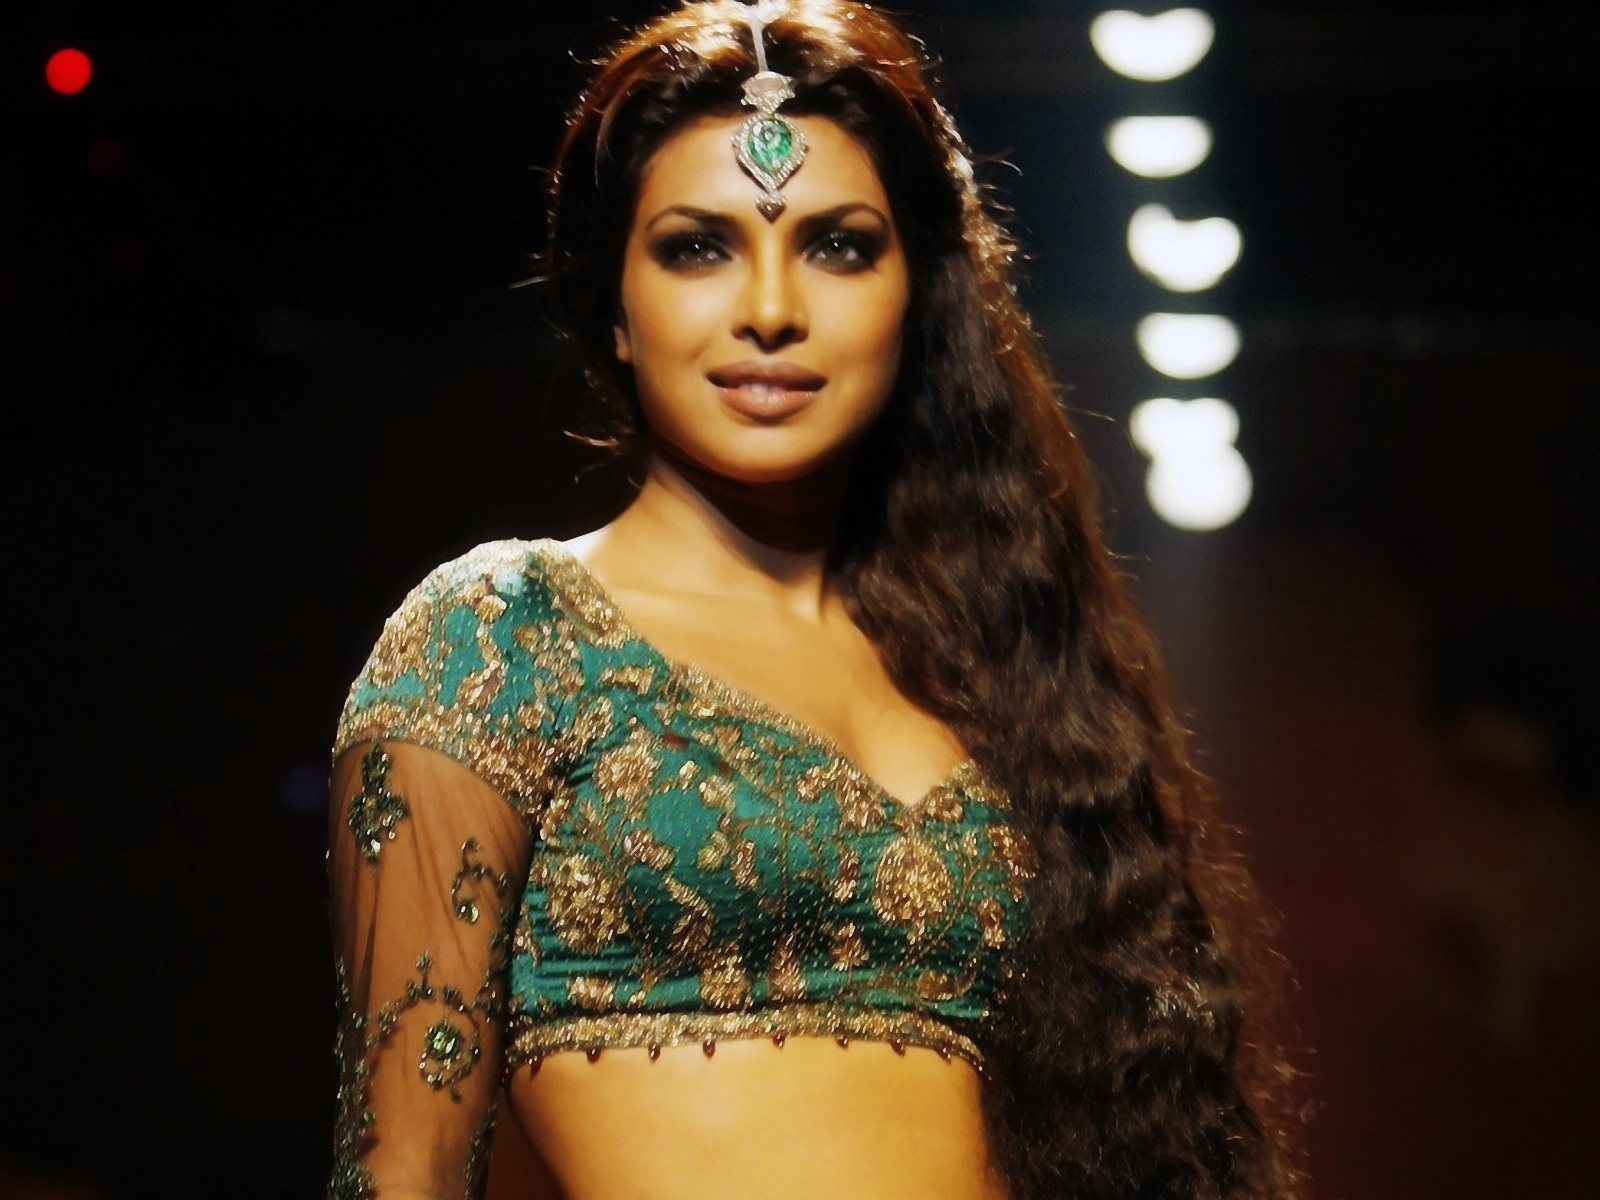 Priyanka Chopra hd 2013 wallpapers